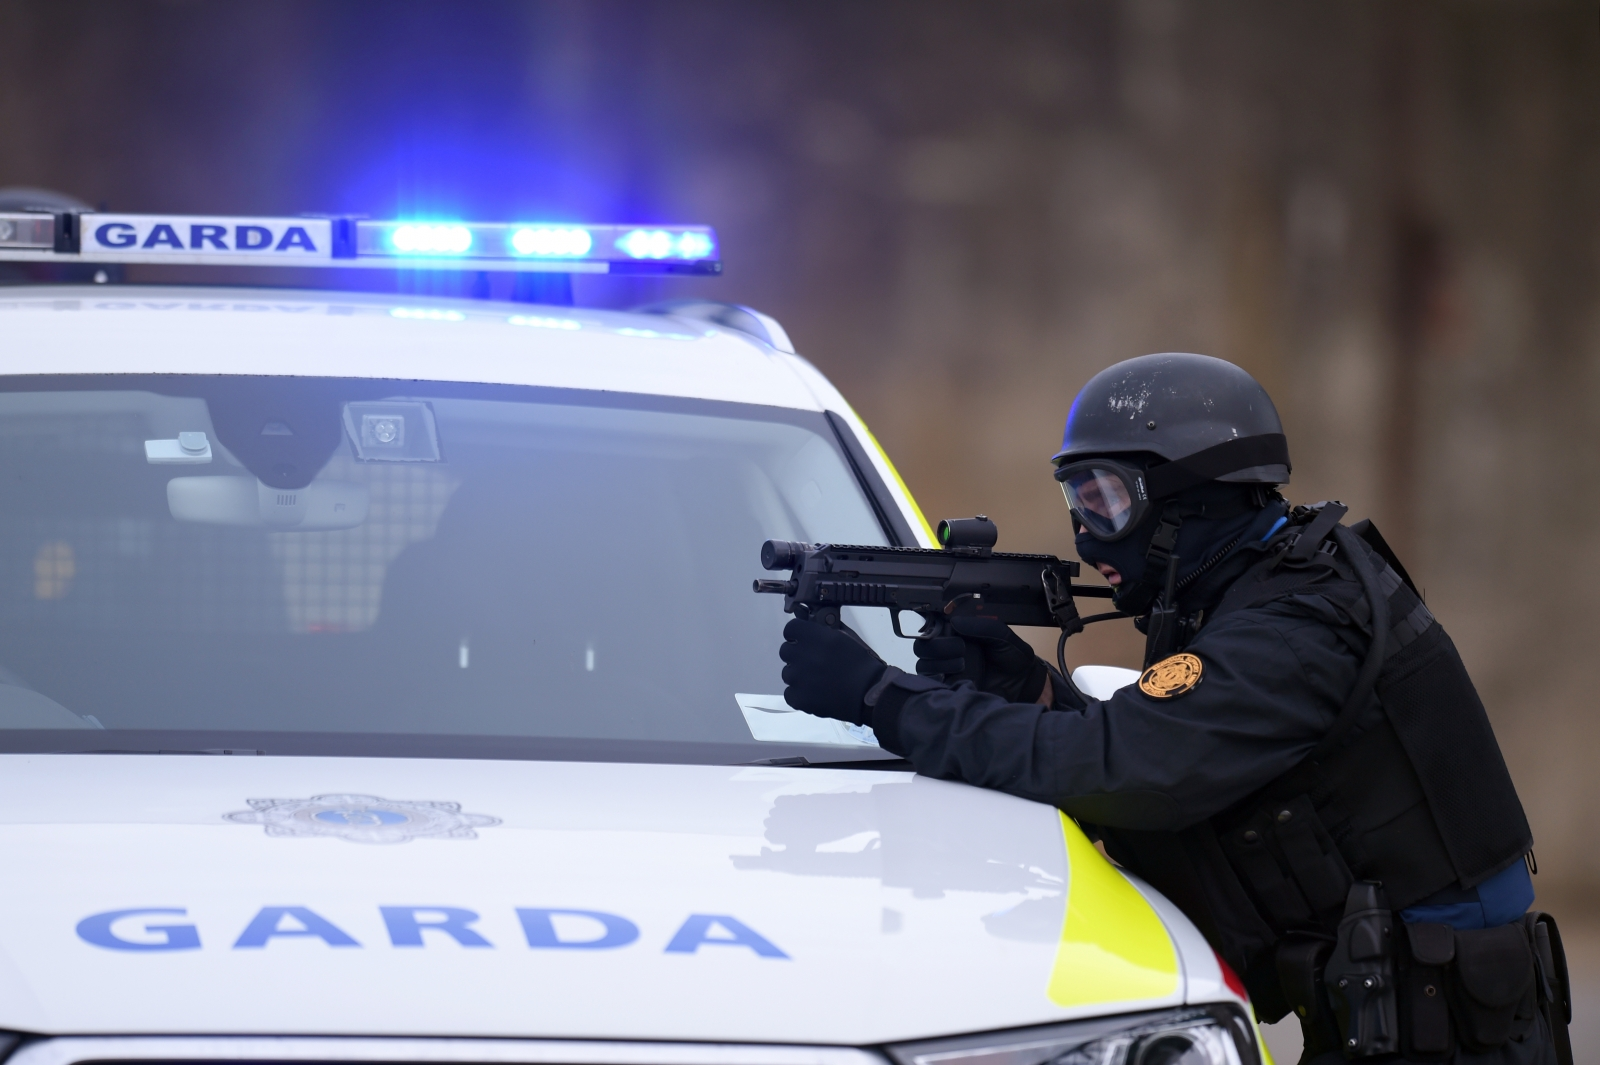 The Garda have arrested a heavily-armed 18-year-old man, believed to be Egyptian, after a series of attacks in Dundalk